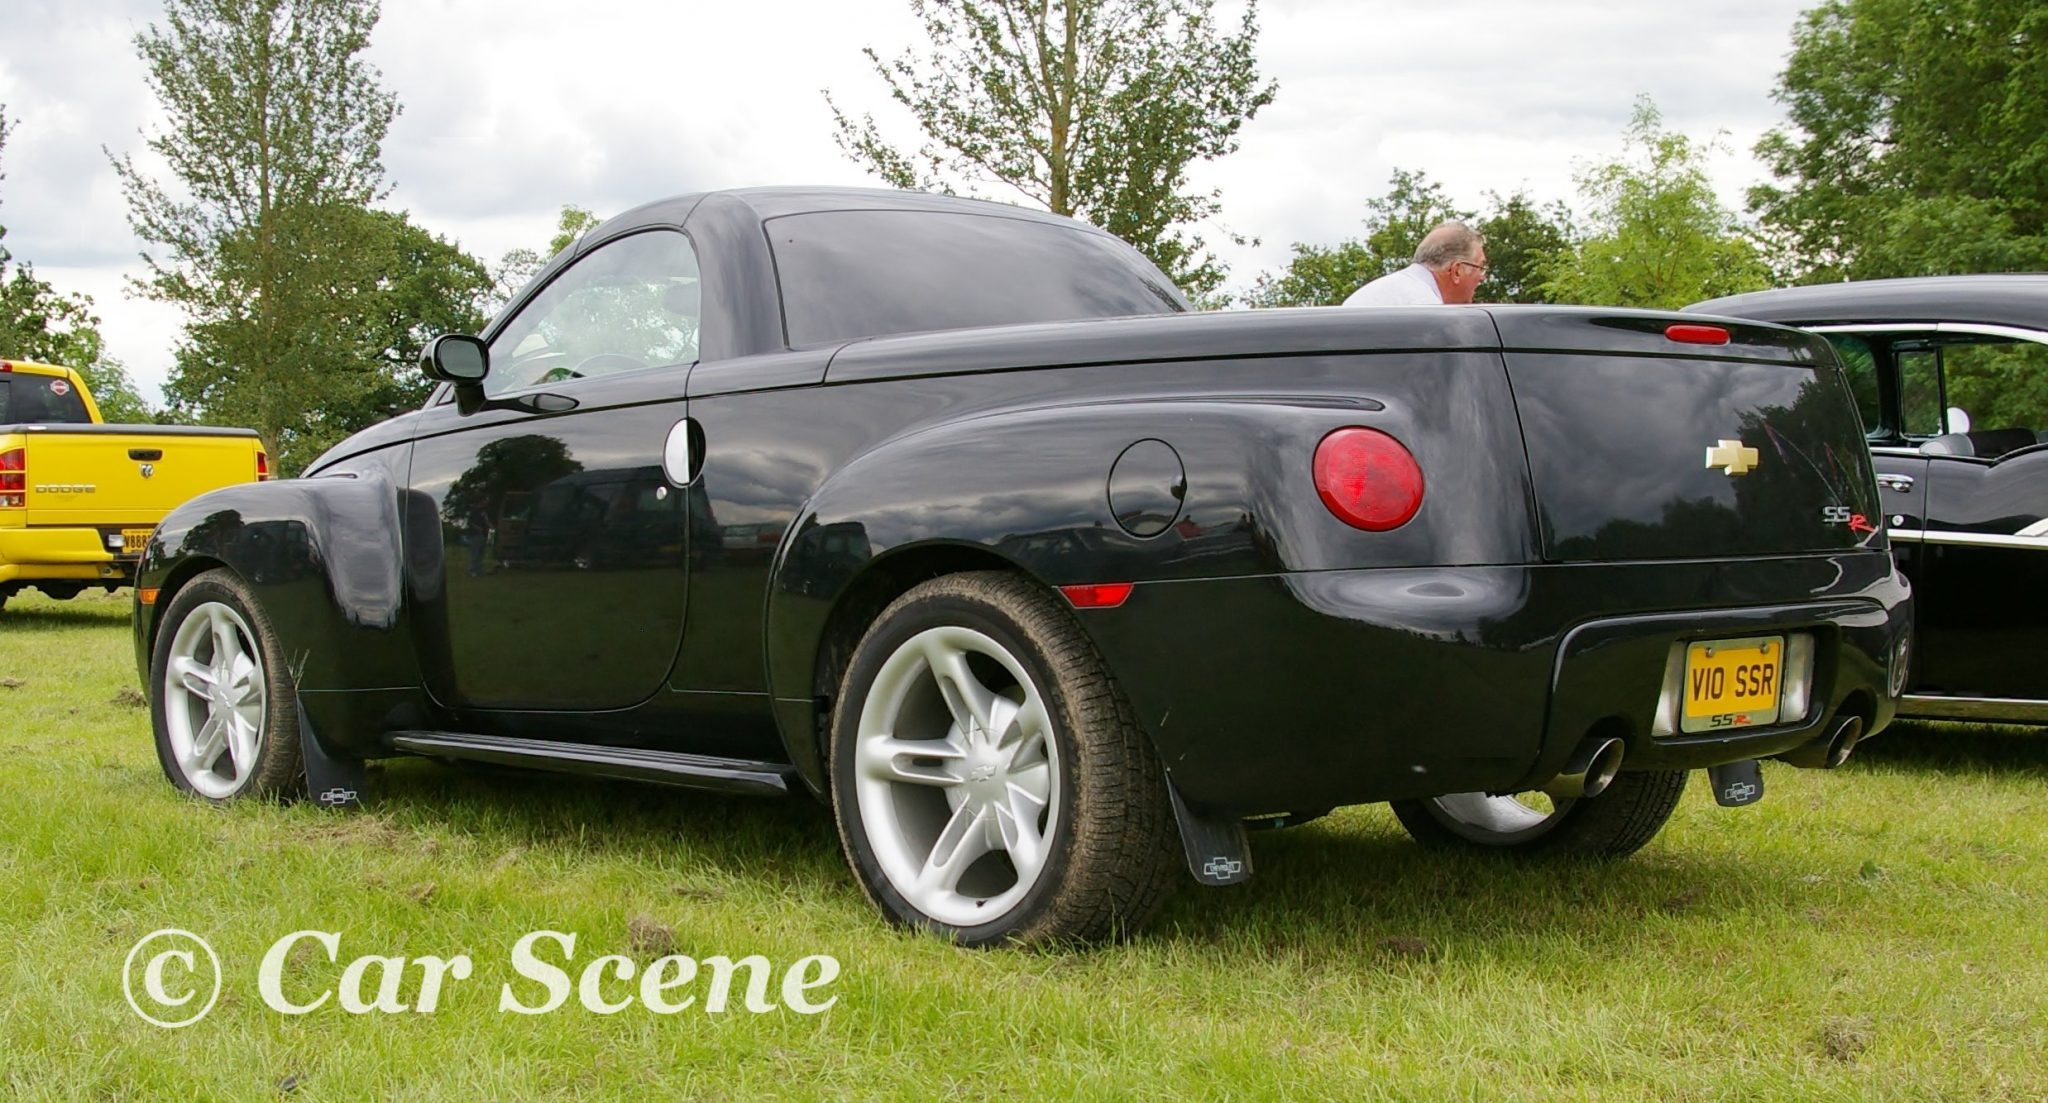 2005 Chevrolet Super Sports Roadster rear three quarters view